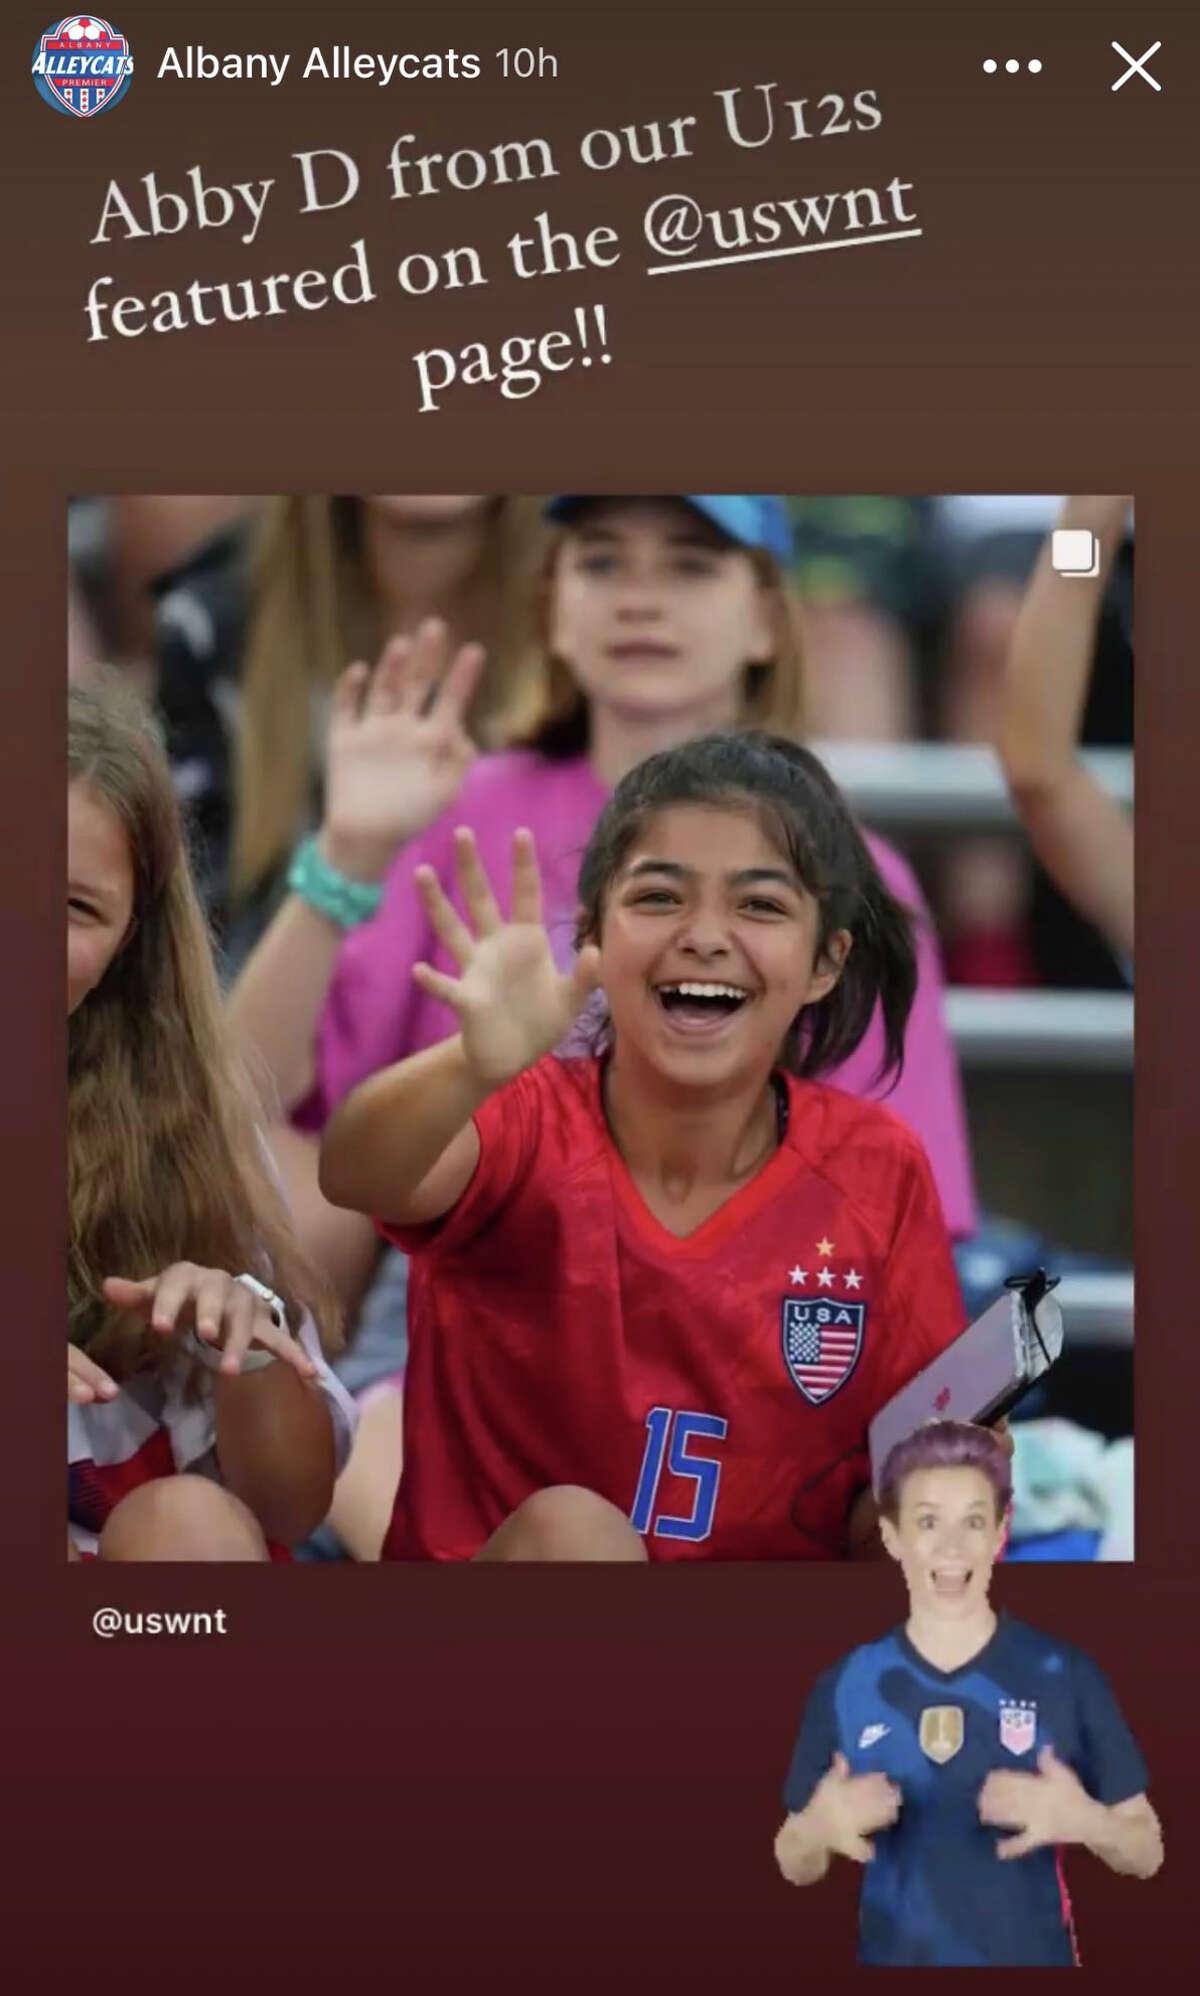 Albany Alleycat Abby deMoulpied of Colonie made the USWNT Instagram page when she attended the Send-Off Series match against Mexico at Pratt & Whitney Stadium in East Hartford, Conn. on July 1, 2021.